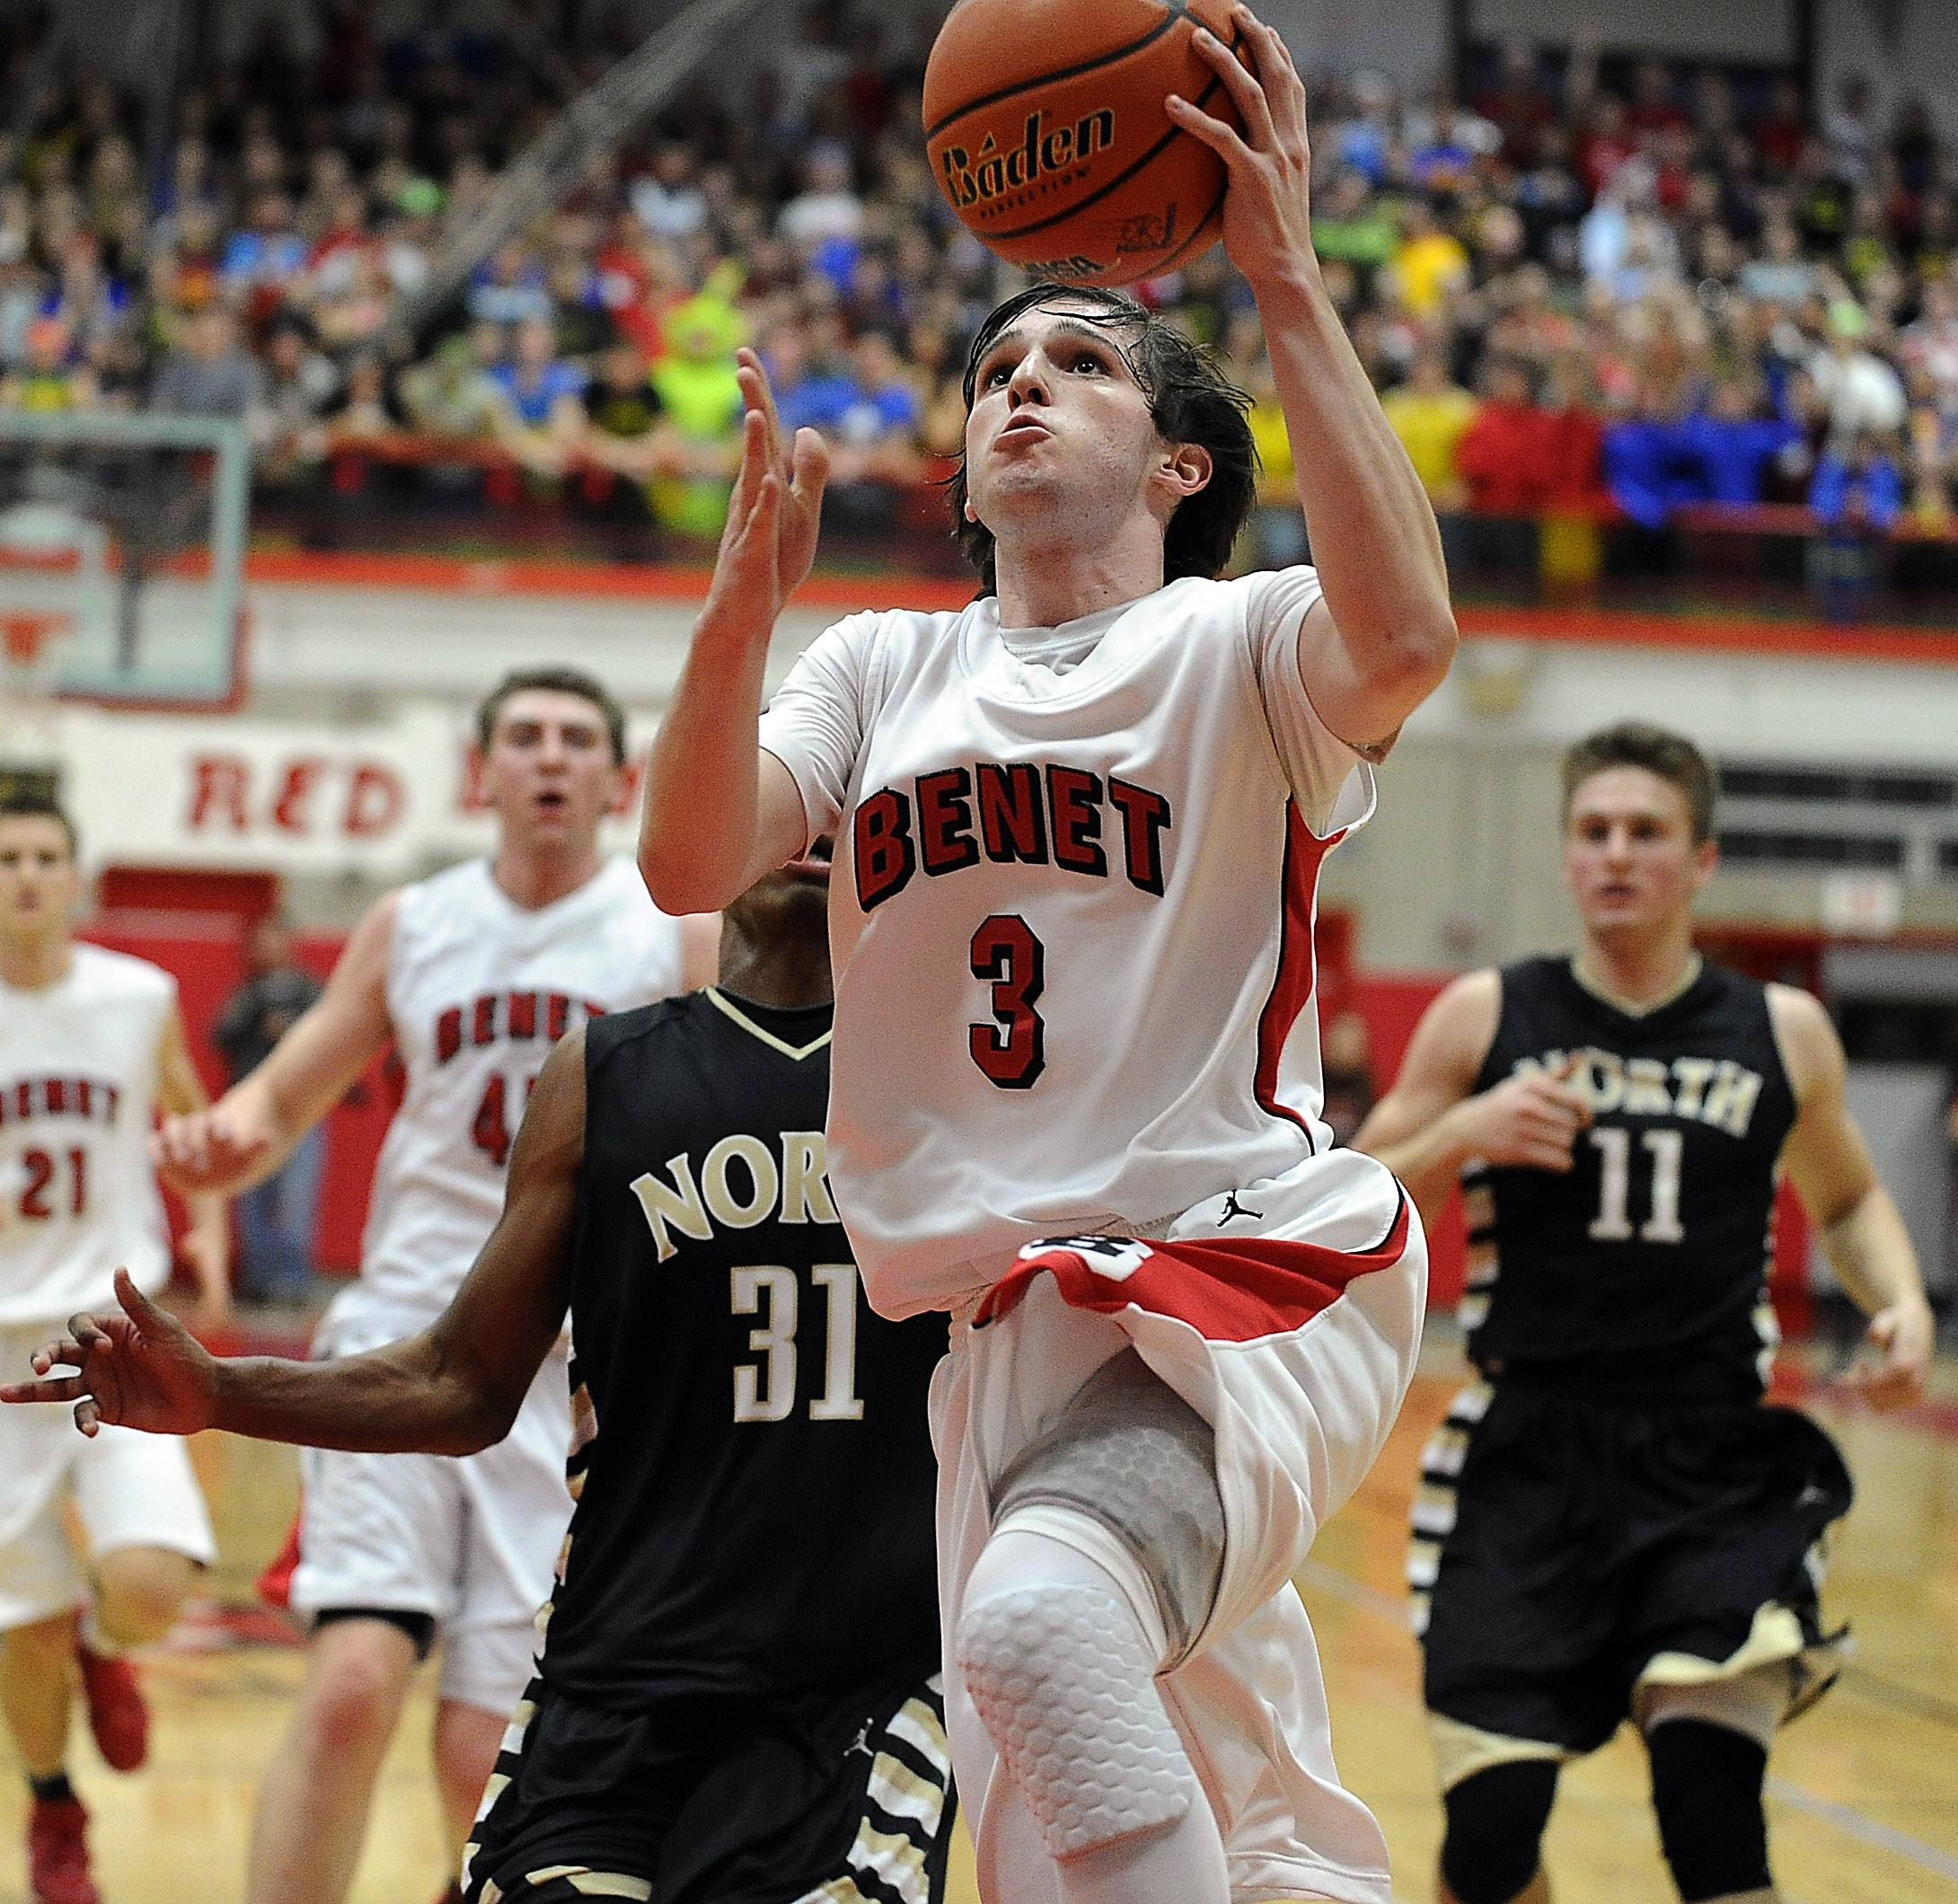 Benet's Collin Pellettieri delivers the points on a steal from Glenbard North defense in the first half in the supersectional boys basketball at Hinsdale Central on Tuesday.